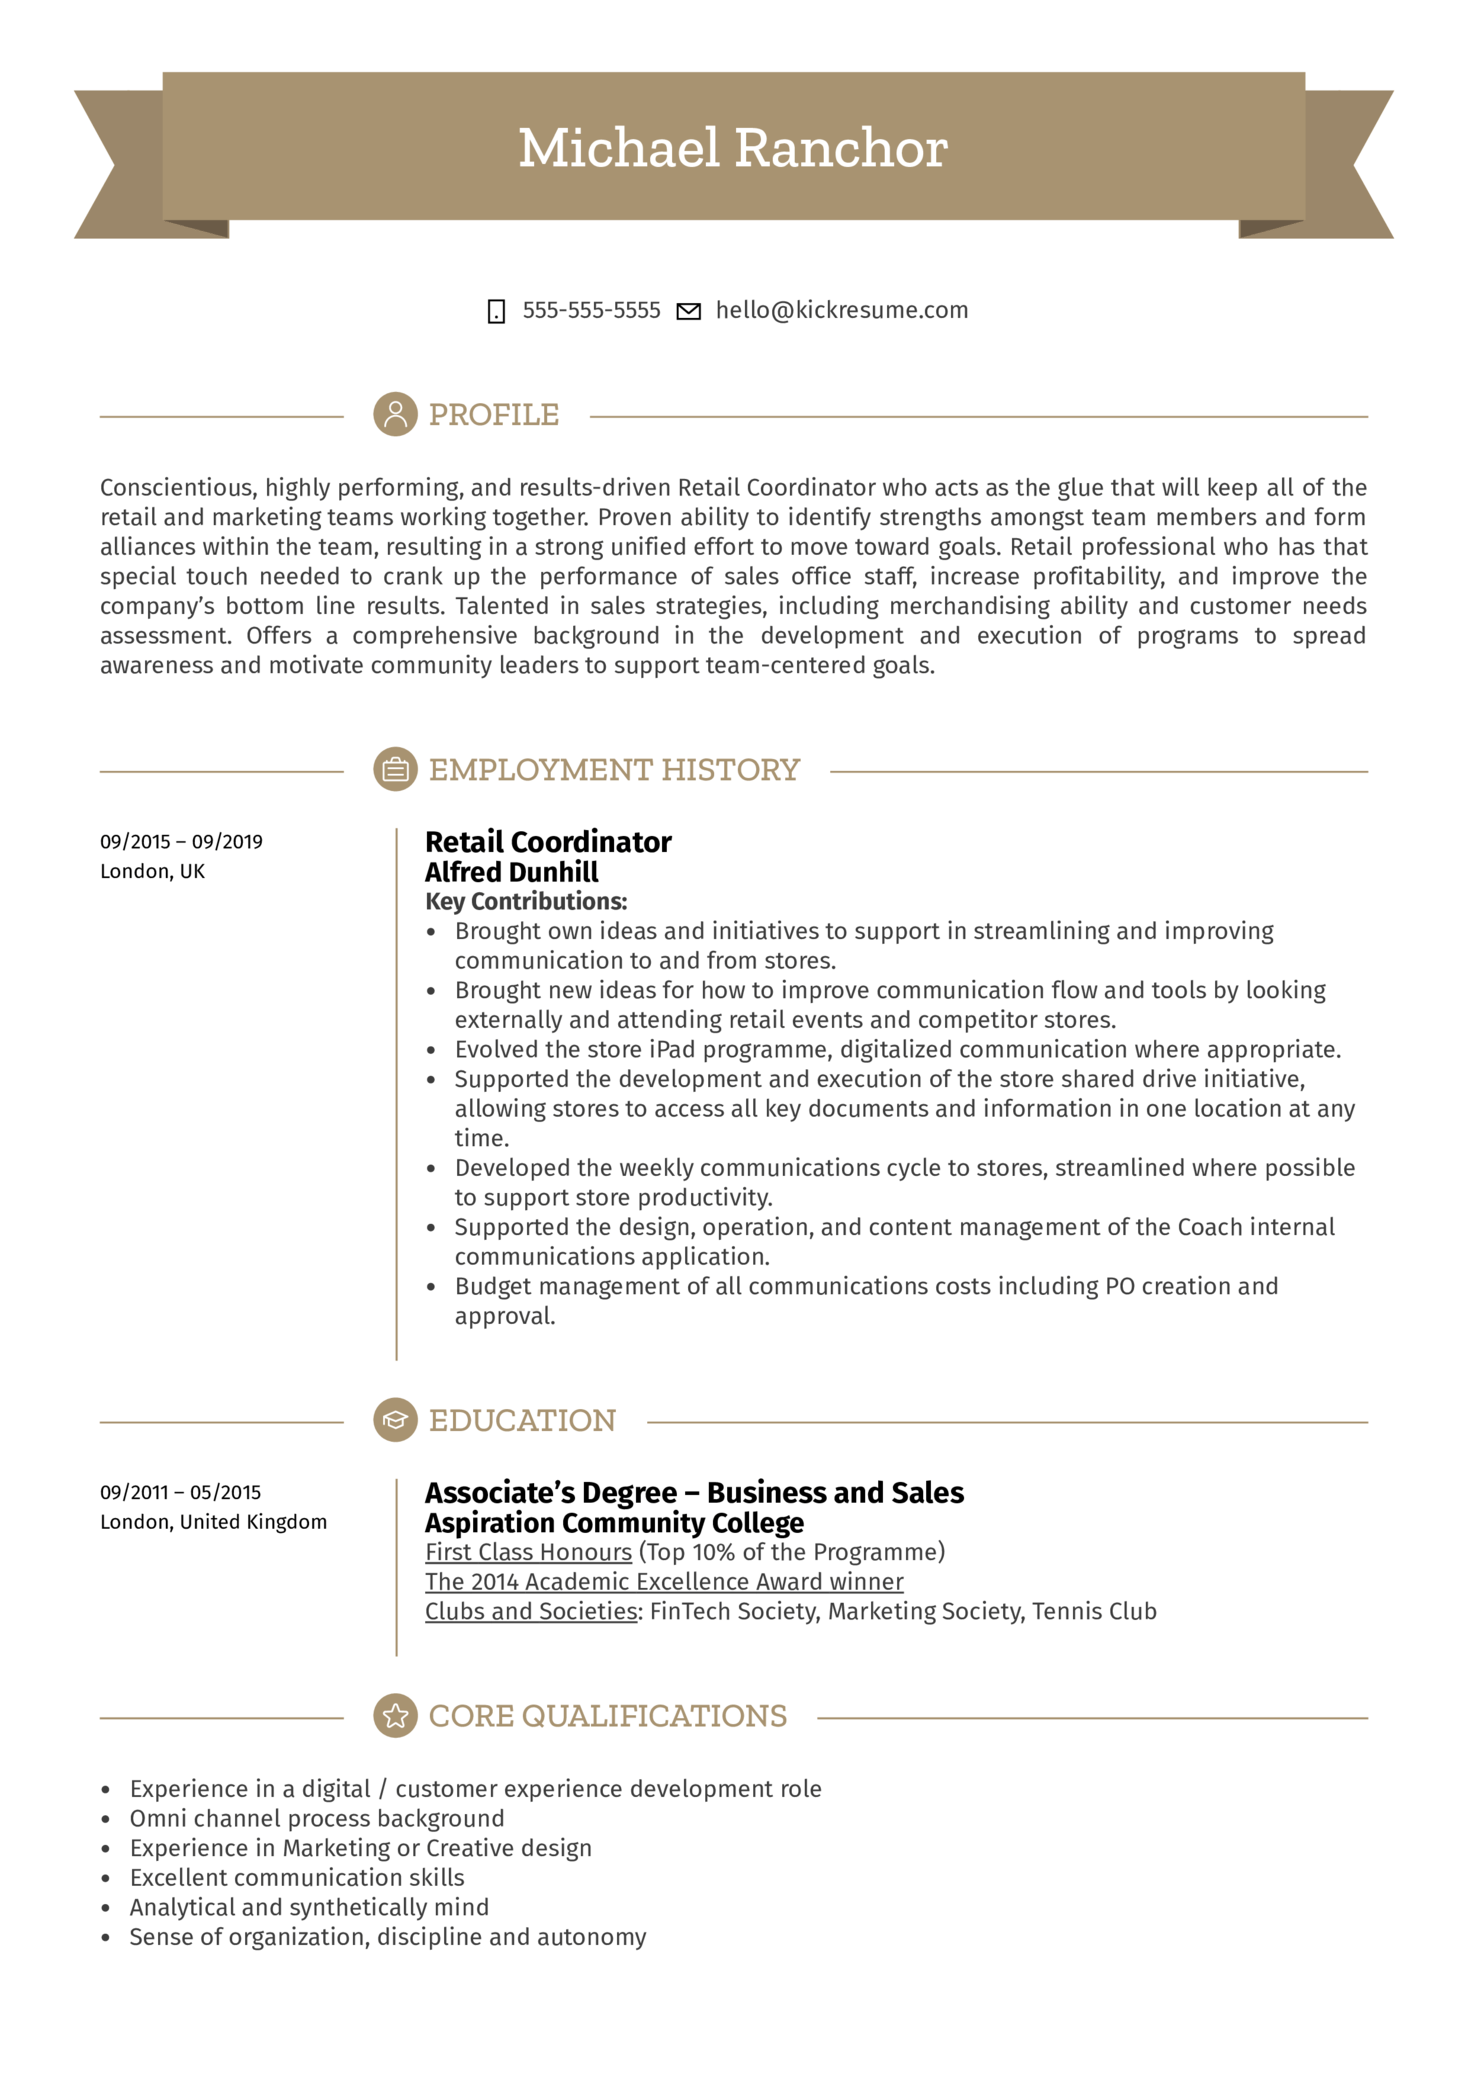 Retail Coordinator Resume Sample